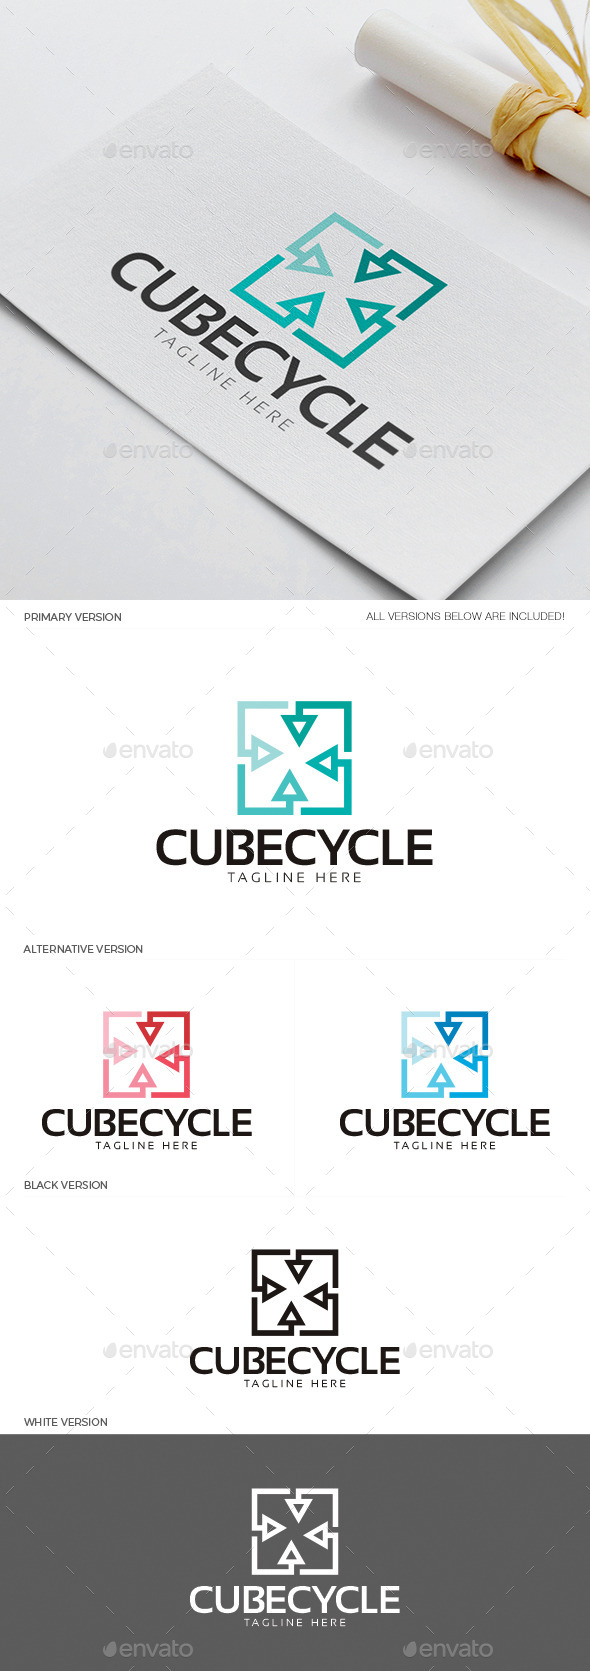 Cube Cycle Logo - Objects Logo Templates